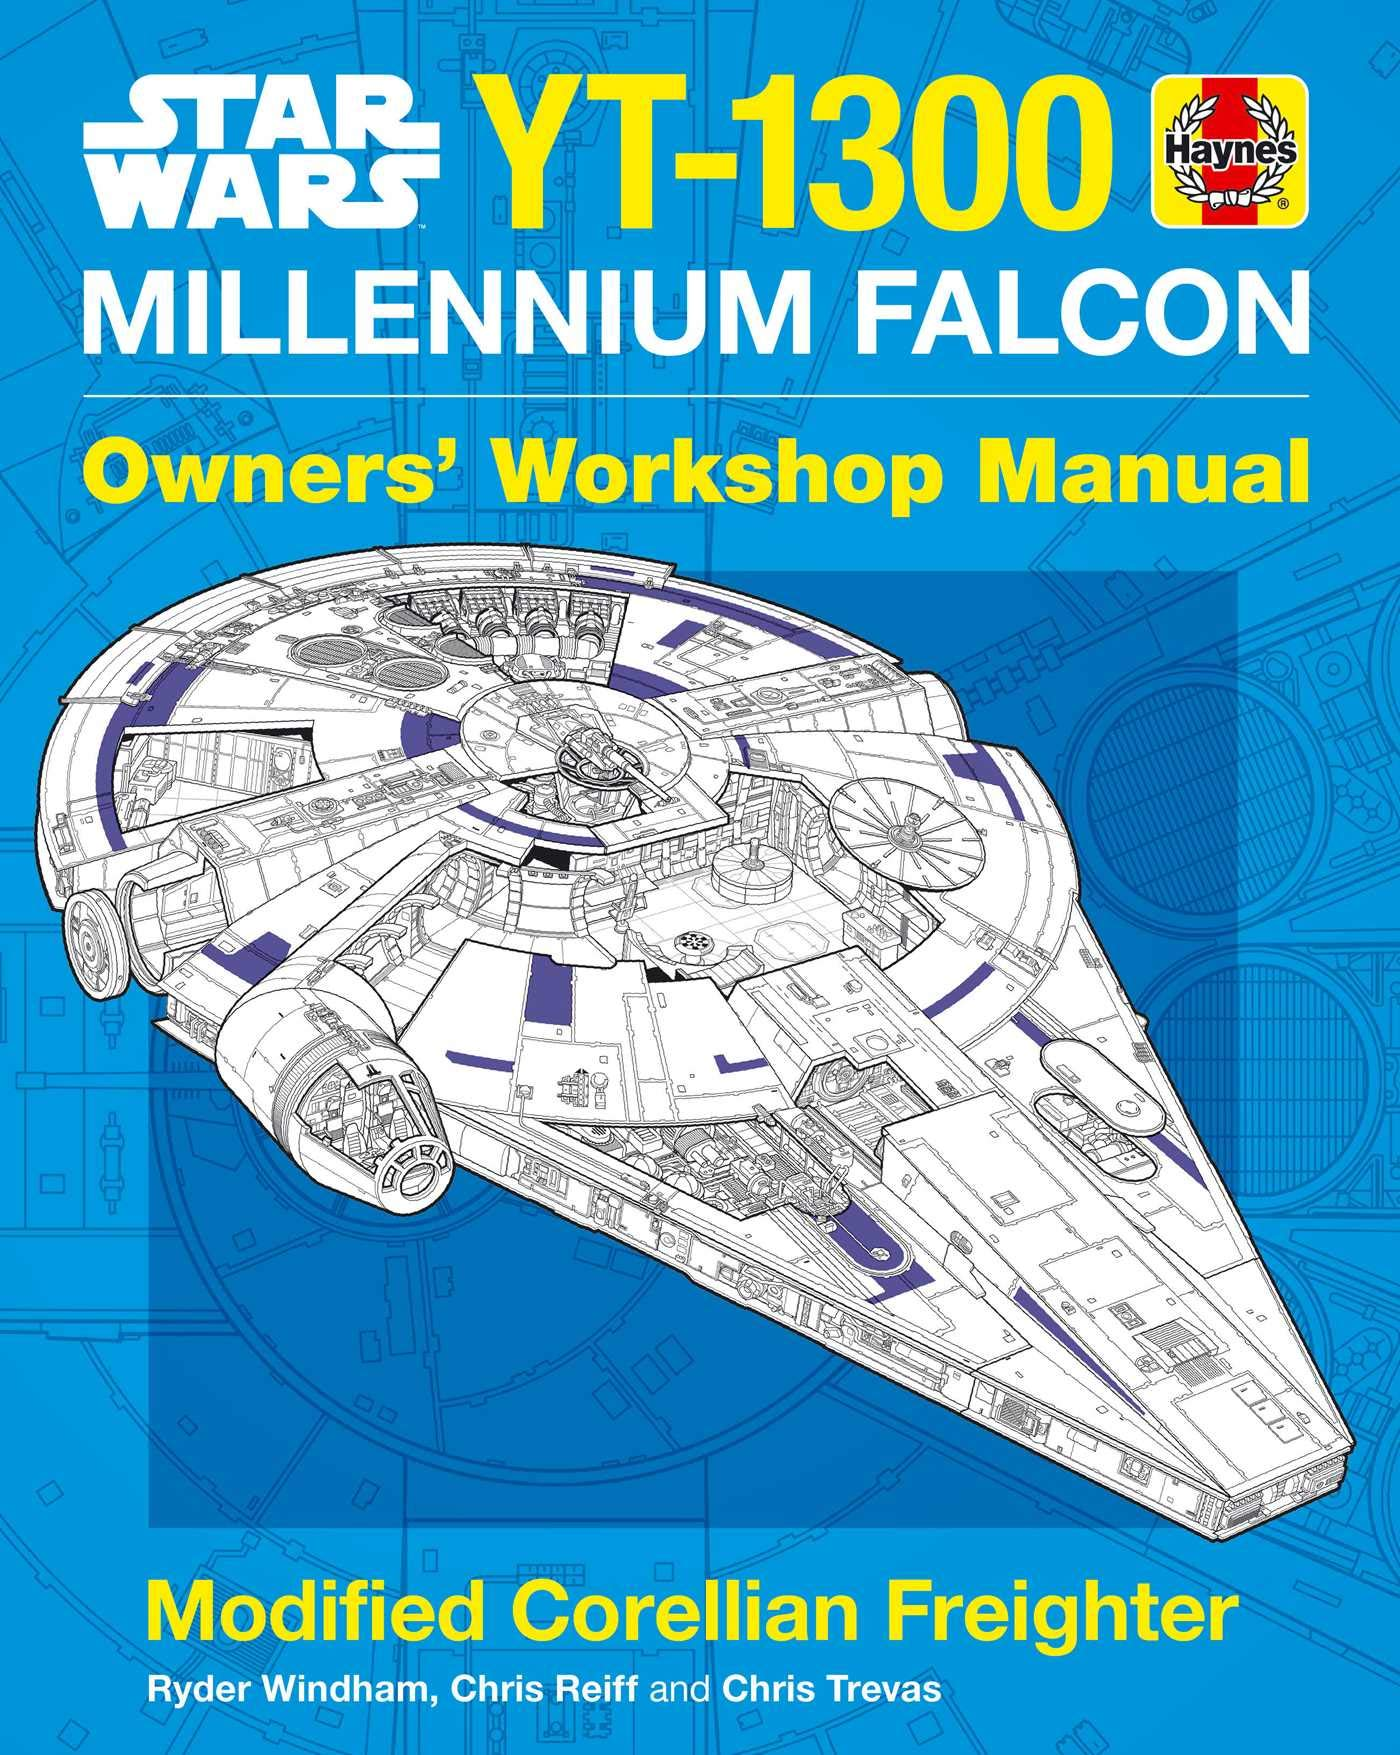 Star Wars: Millennium Falcon, Modified YT-1300 Corellian Feighter (updated)